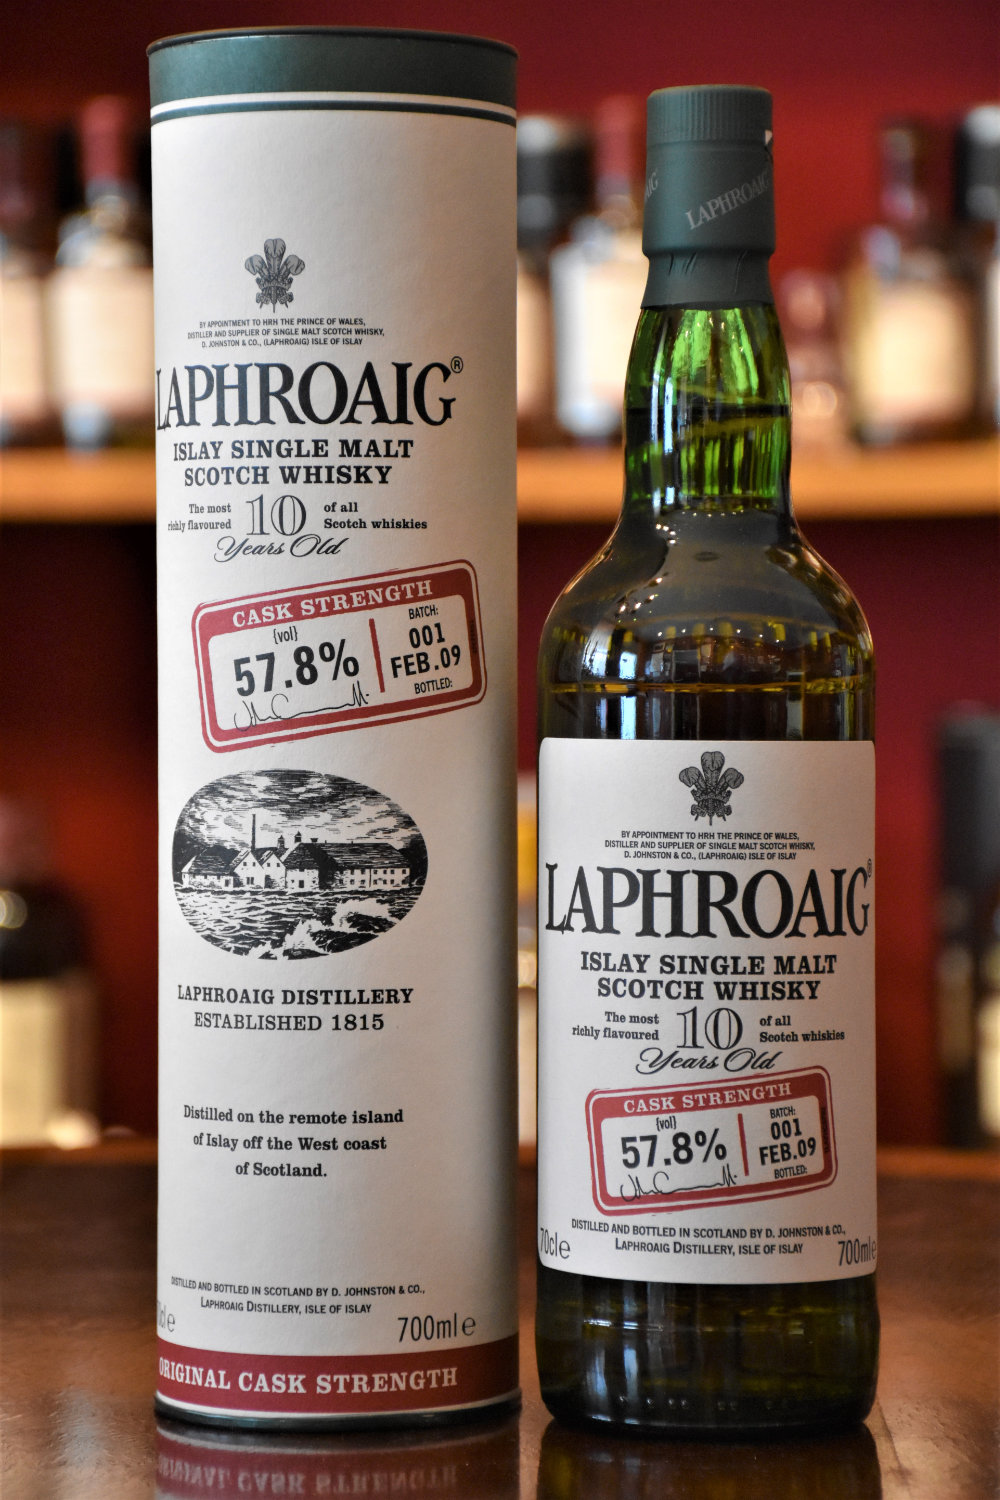 Laphroaig 10 yo Cask Strength Batch No. 001, Febr. 2009, 57,8% Alc.Vol., Distillery Original Bottling